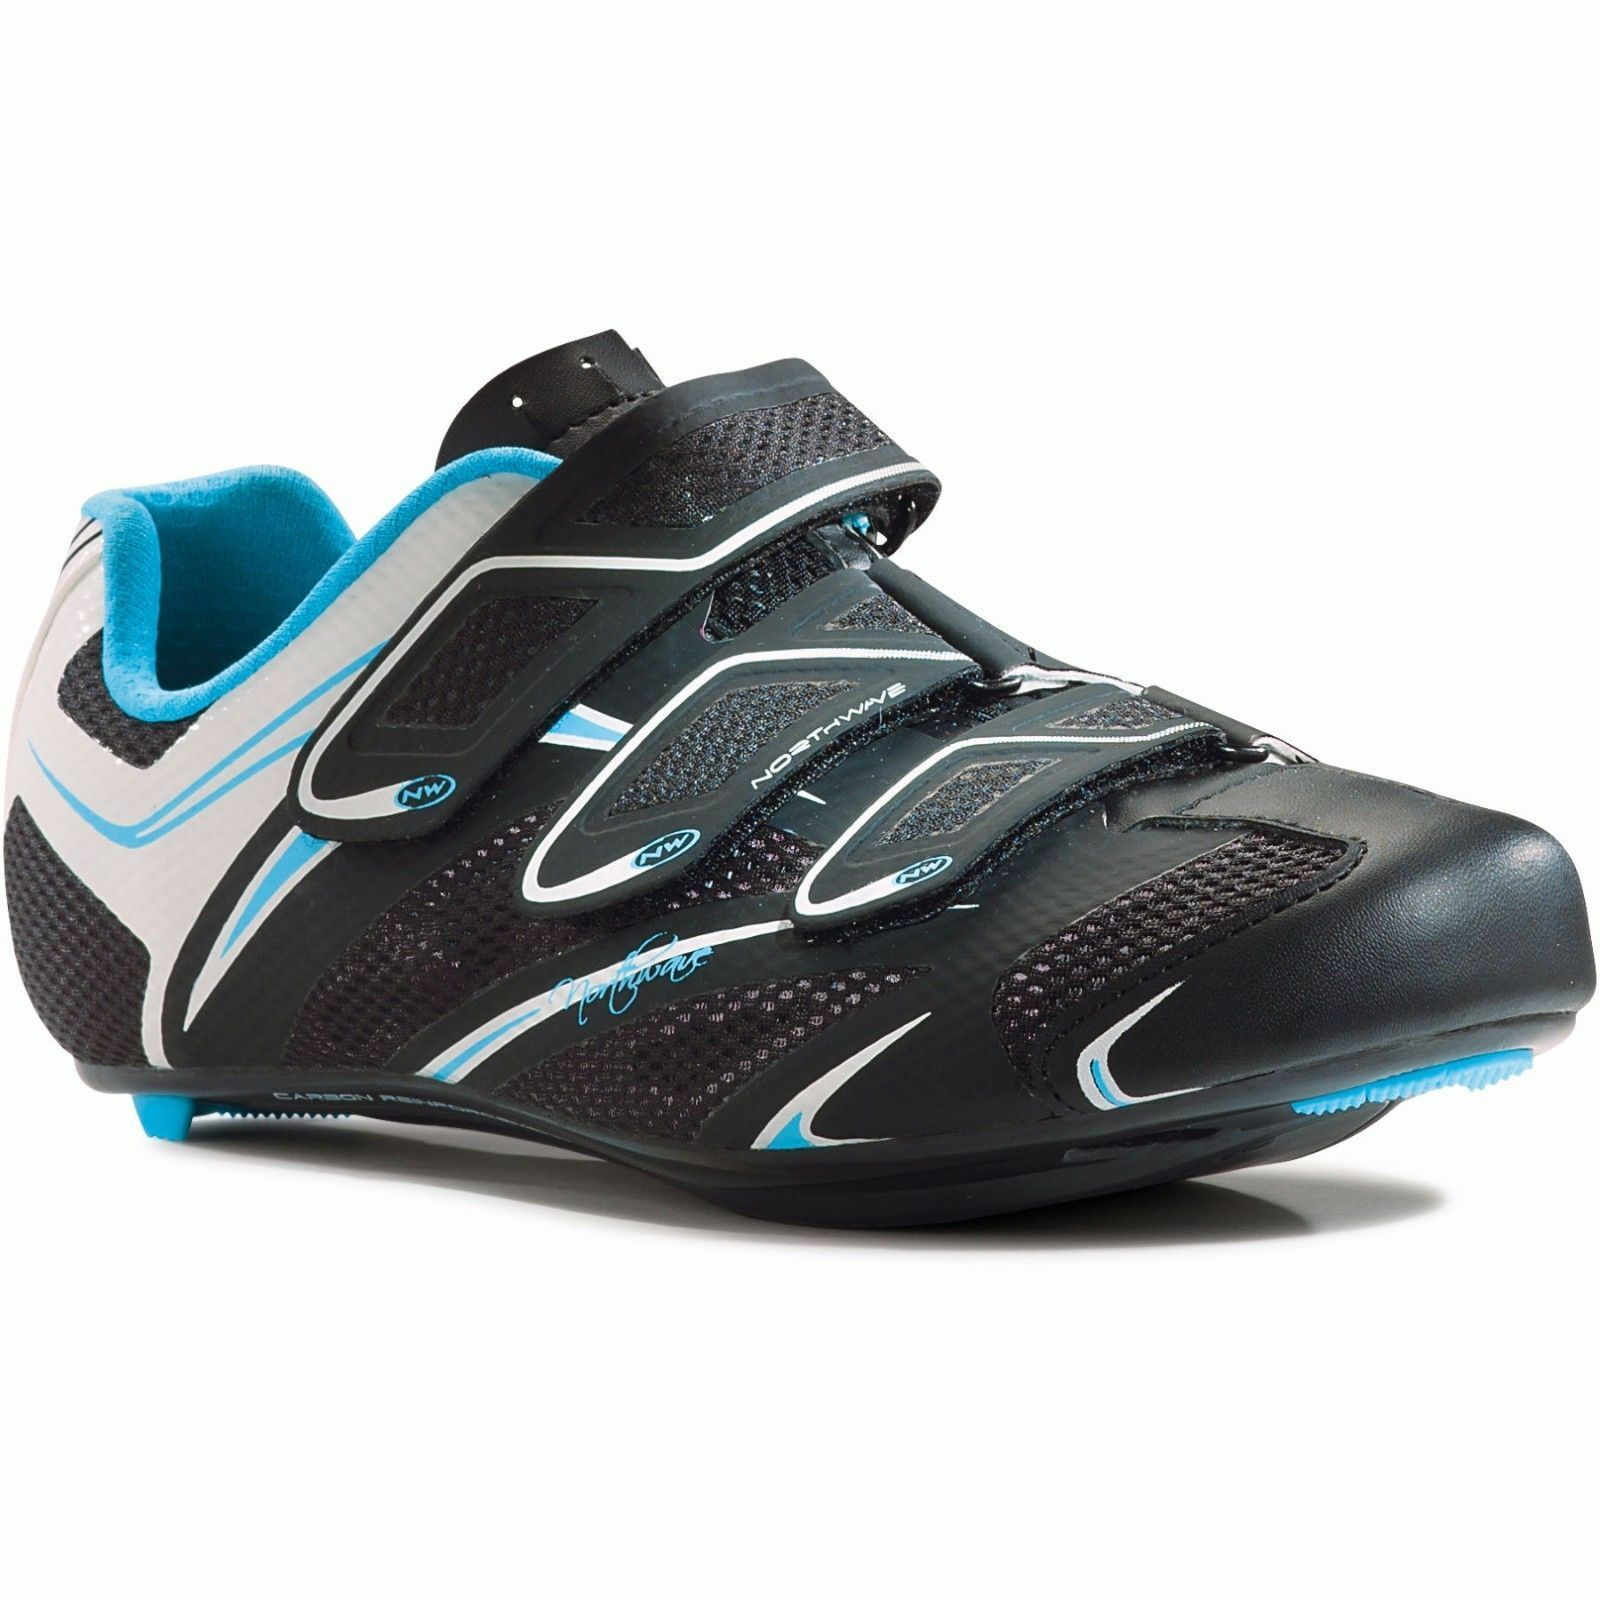 Northwave Women's Starlight 3S Road shoes RRP .99